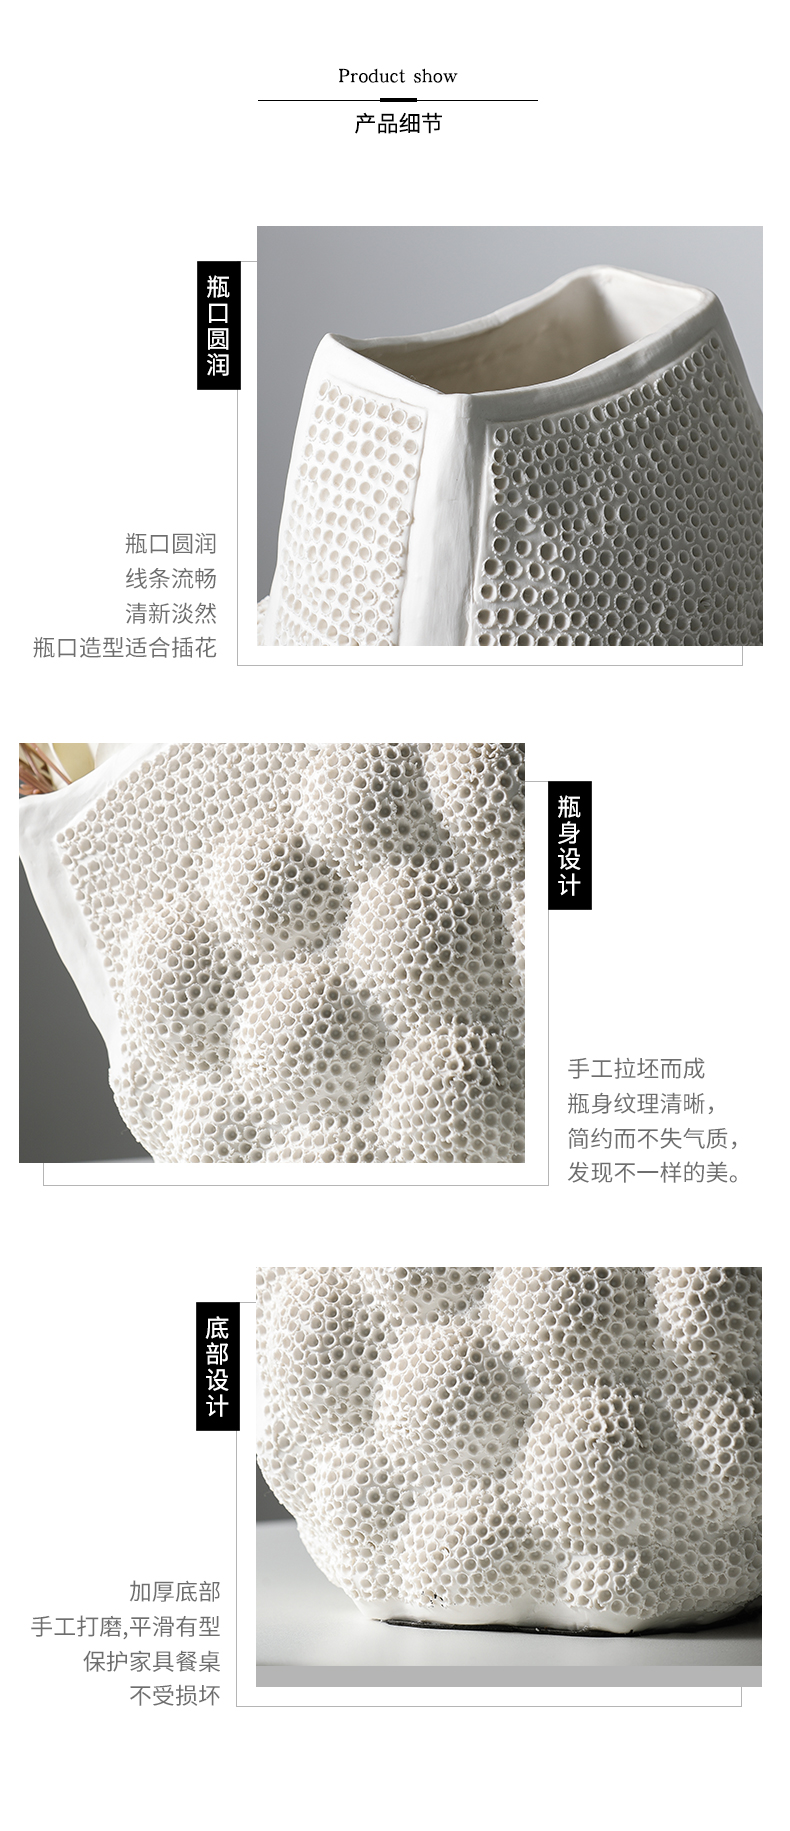 I and contracted rice white ceramic honeycomb dried flower vase household living room TV cabinet restaurant desktop furnishing articles arranging flowers